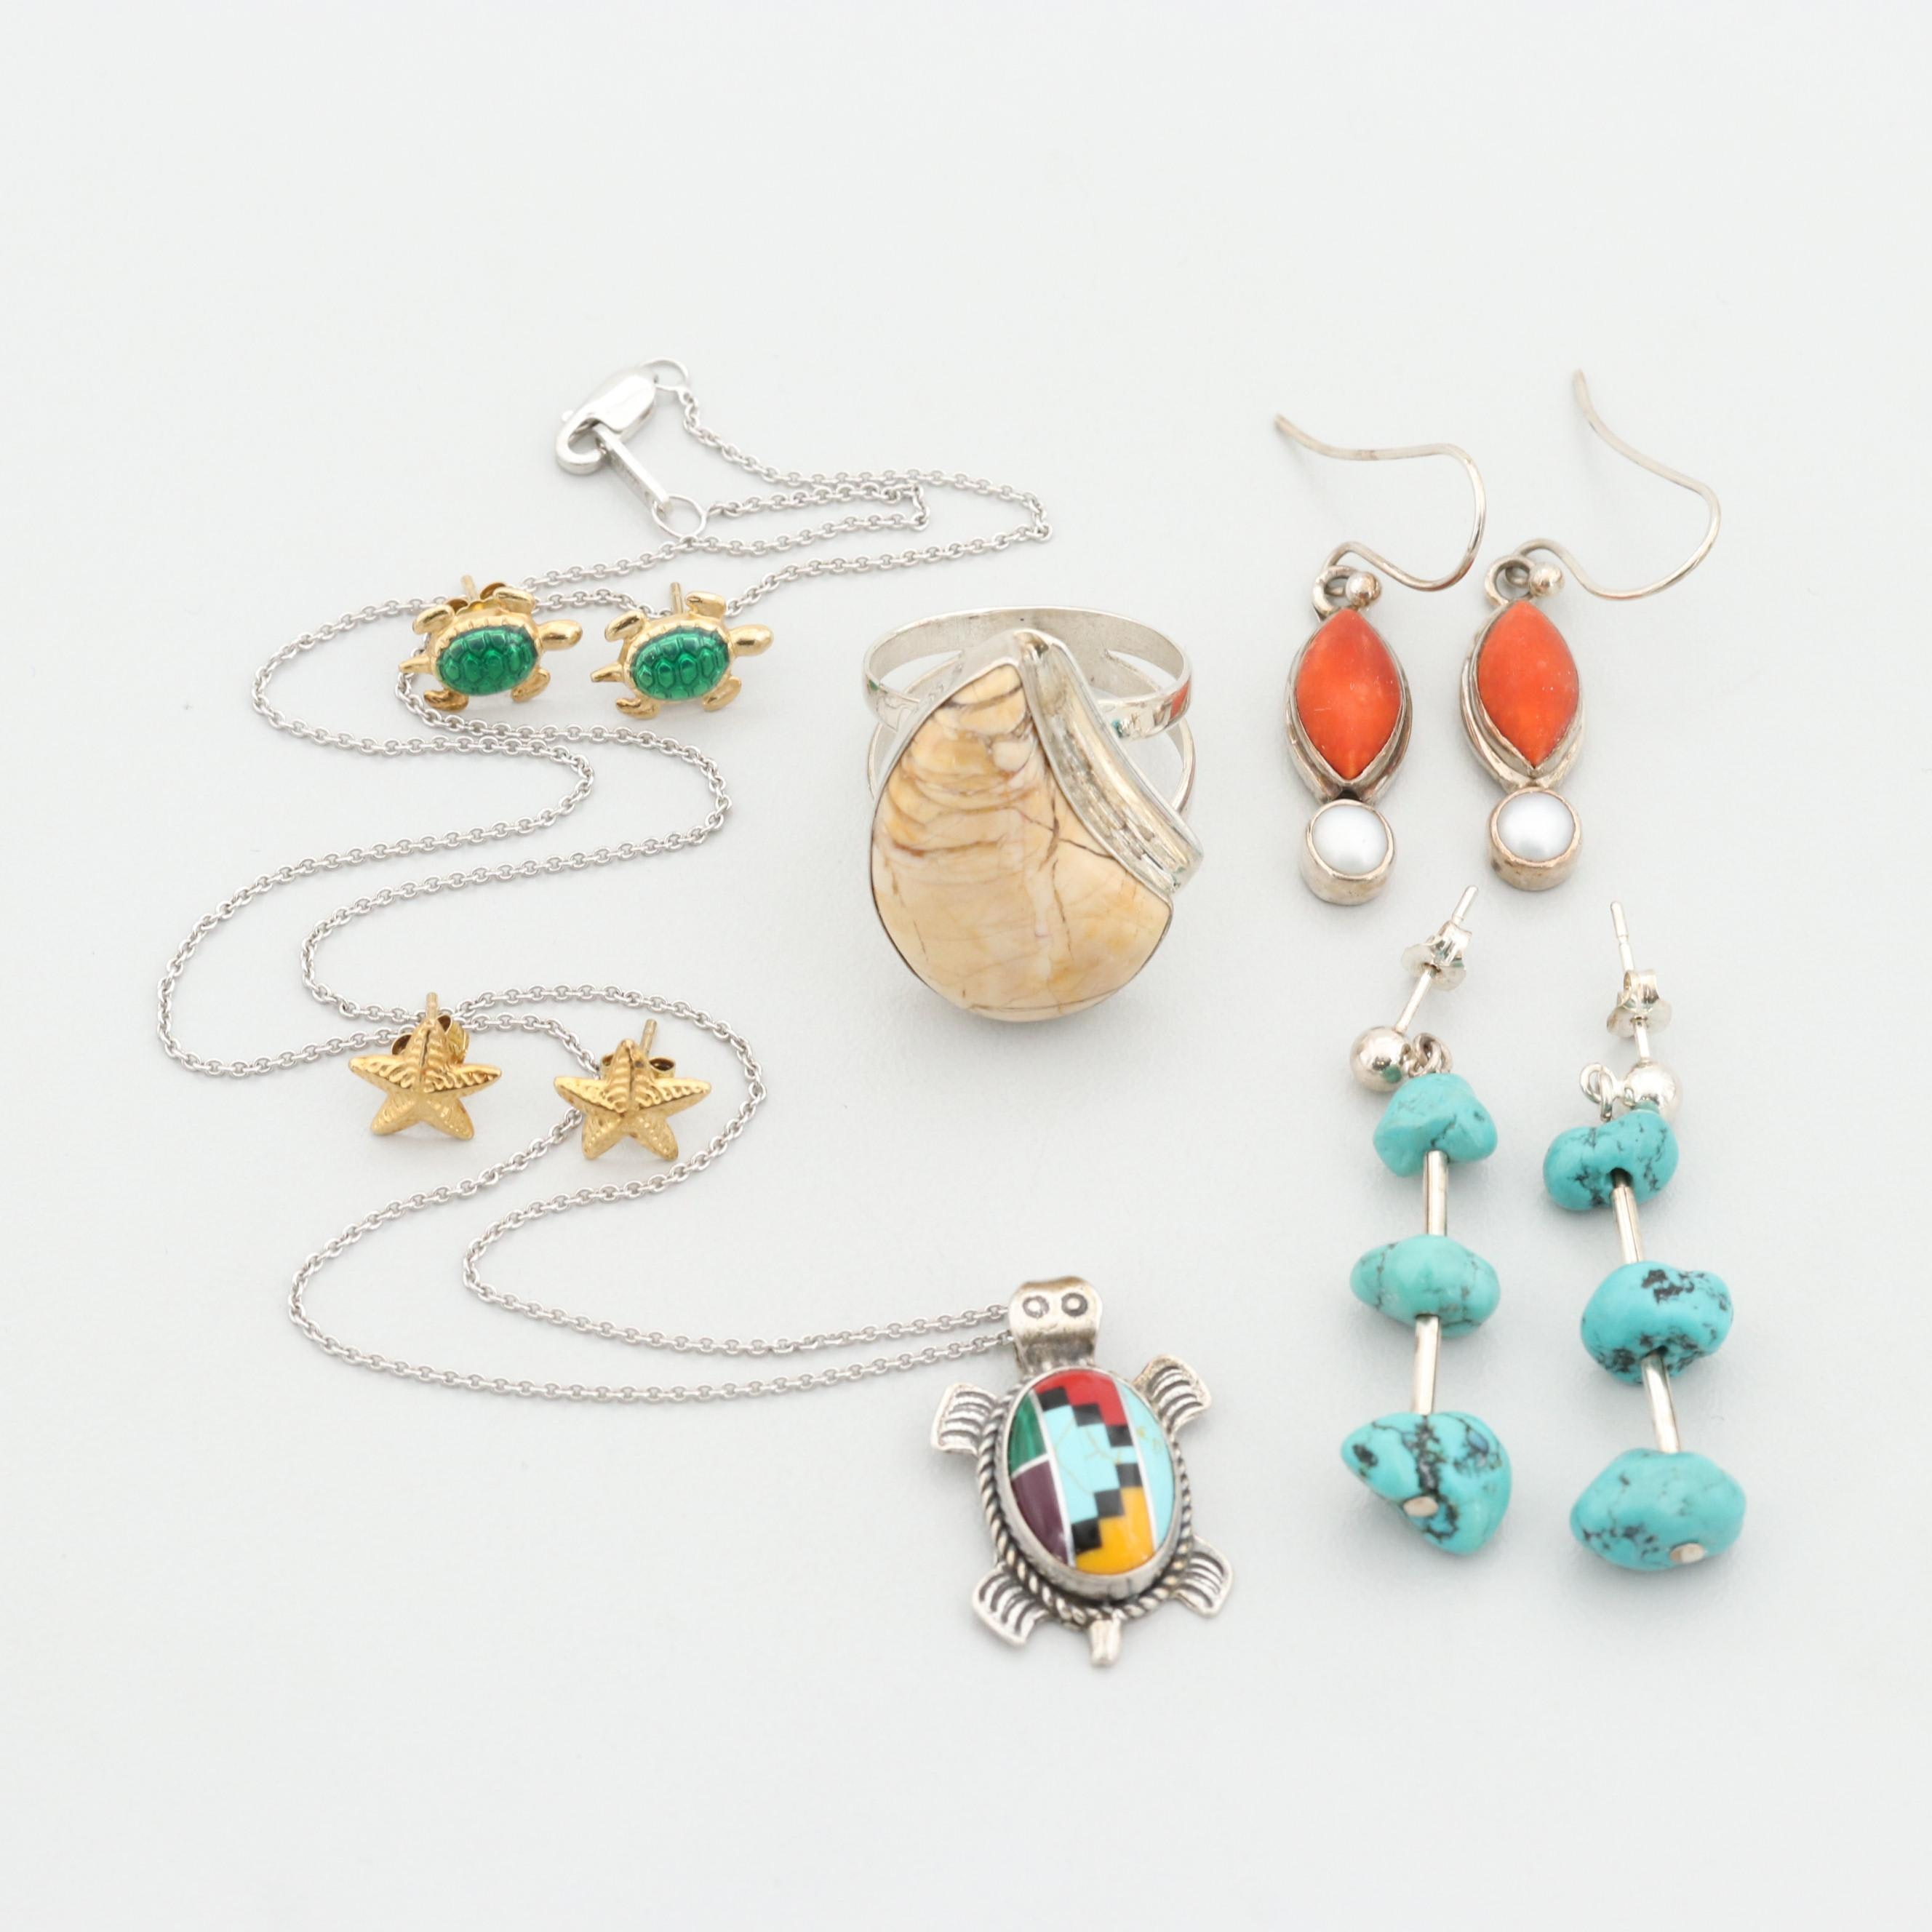 Collection of Sterling Silver Cultured Pearl, Turquoise and Coral Jewelry